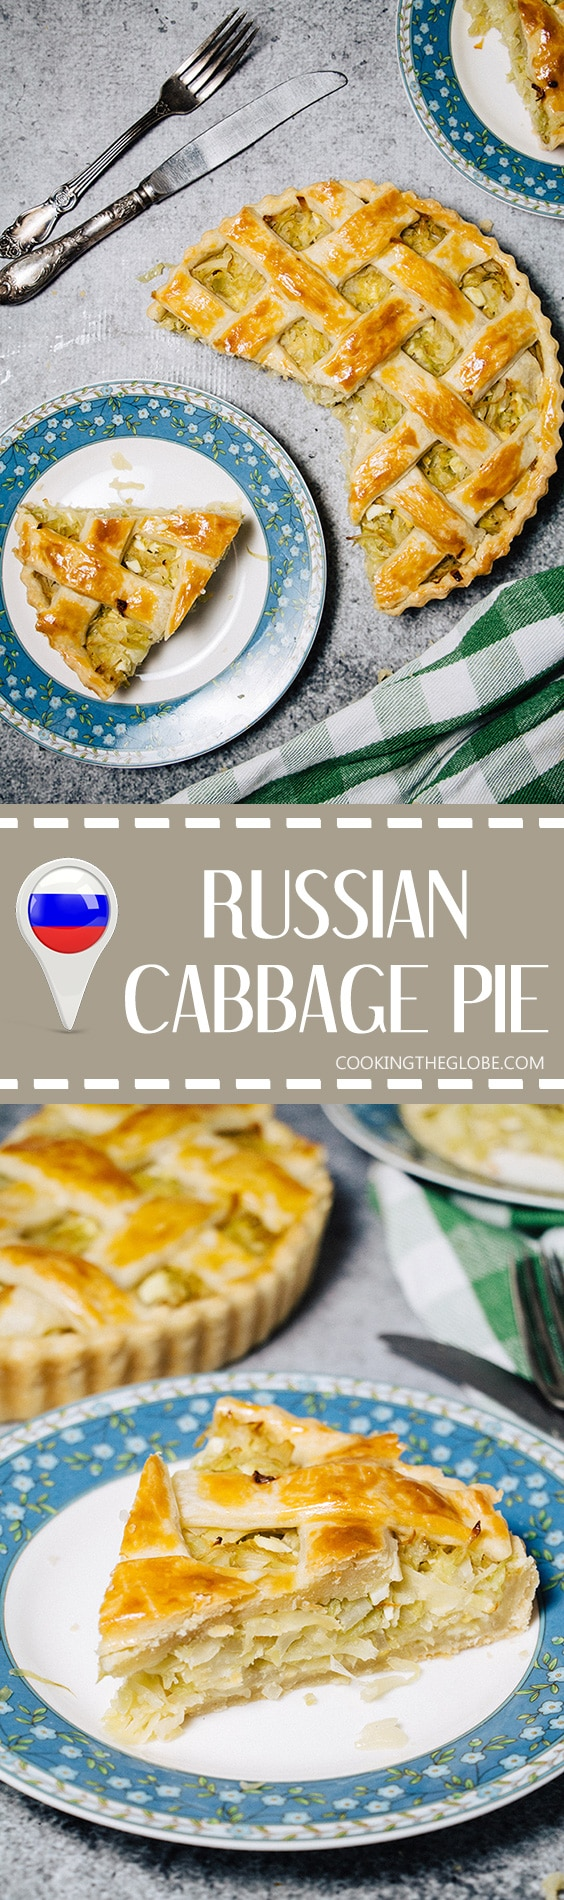 Cabbage pie is one of the most famous Russian dishes. Rich and buttery crust filled with a classic mixture of braised cabbage and boiled eggs! | cookingtheglobe.com